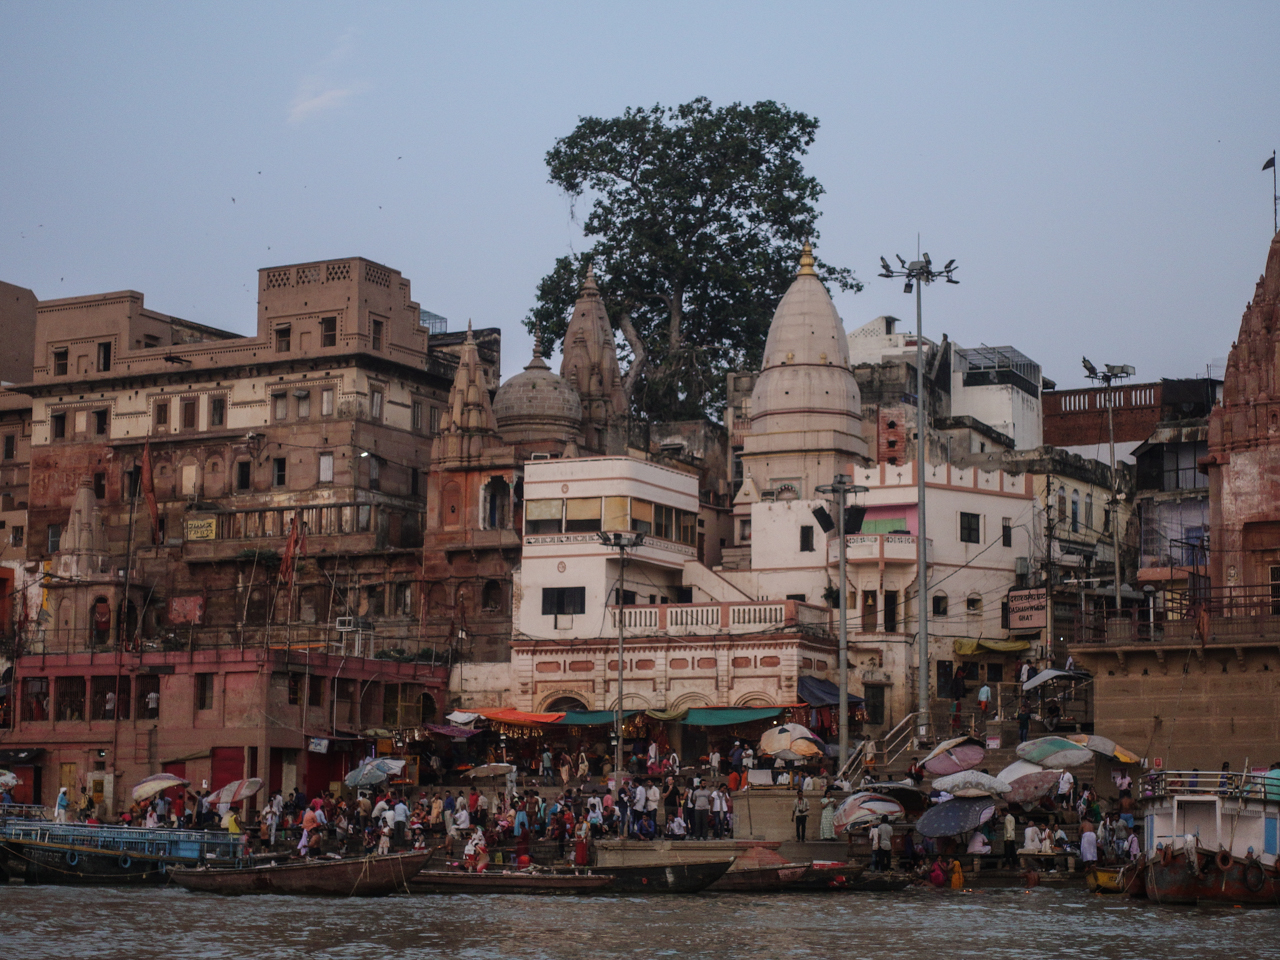 Indian people travel from all over to take a bath in the Ganges river, wash away their sins and bury their dead family members.